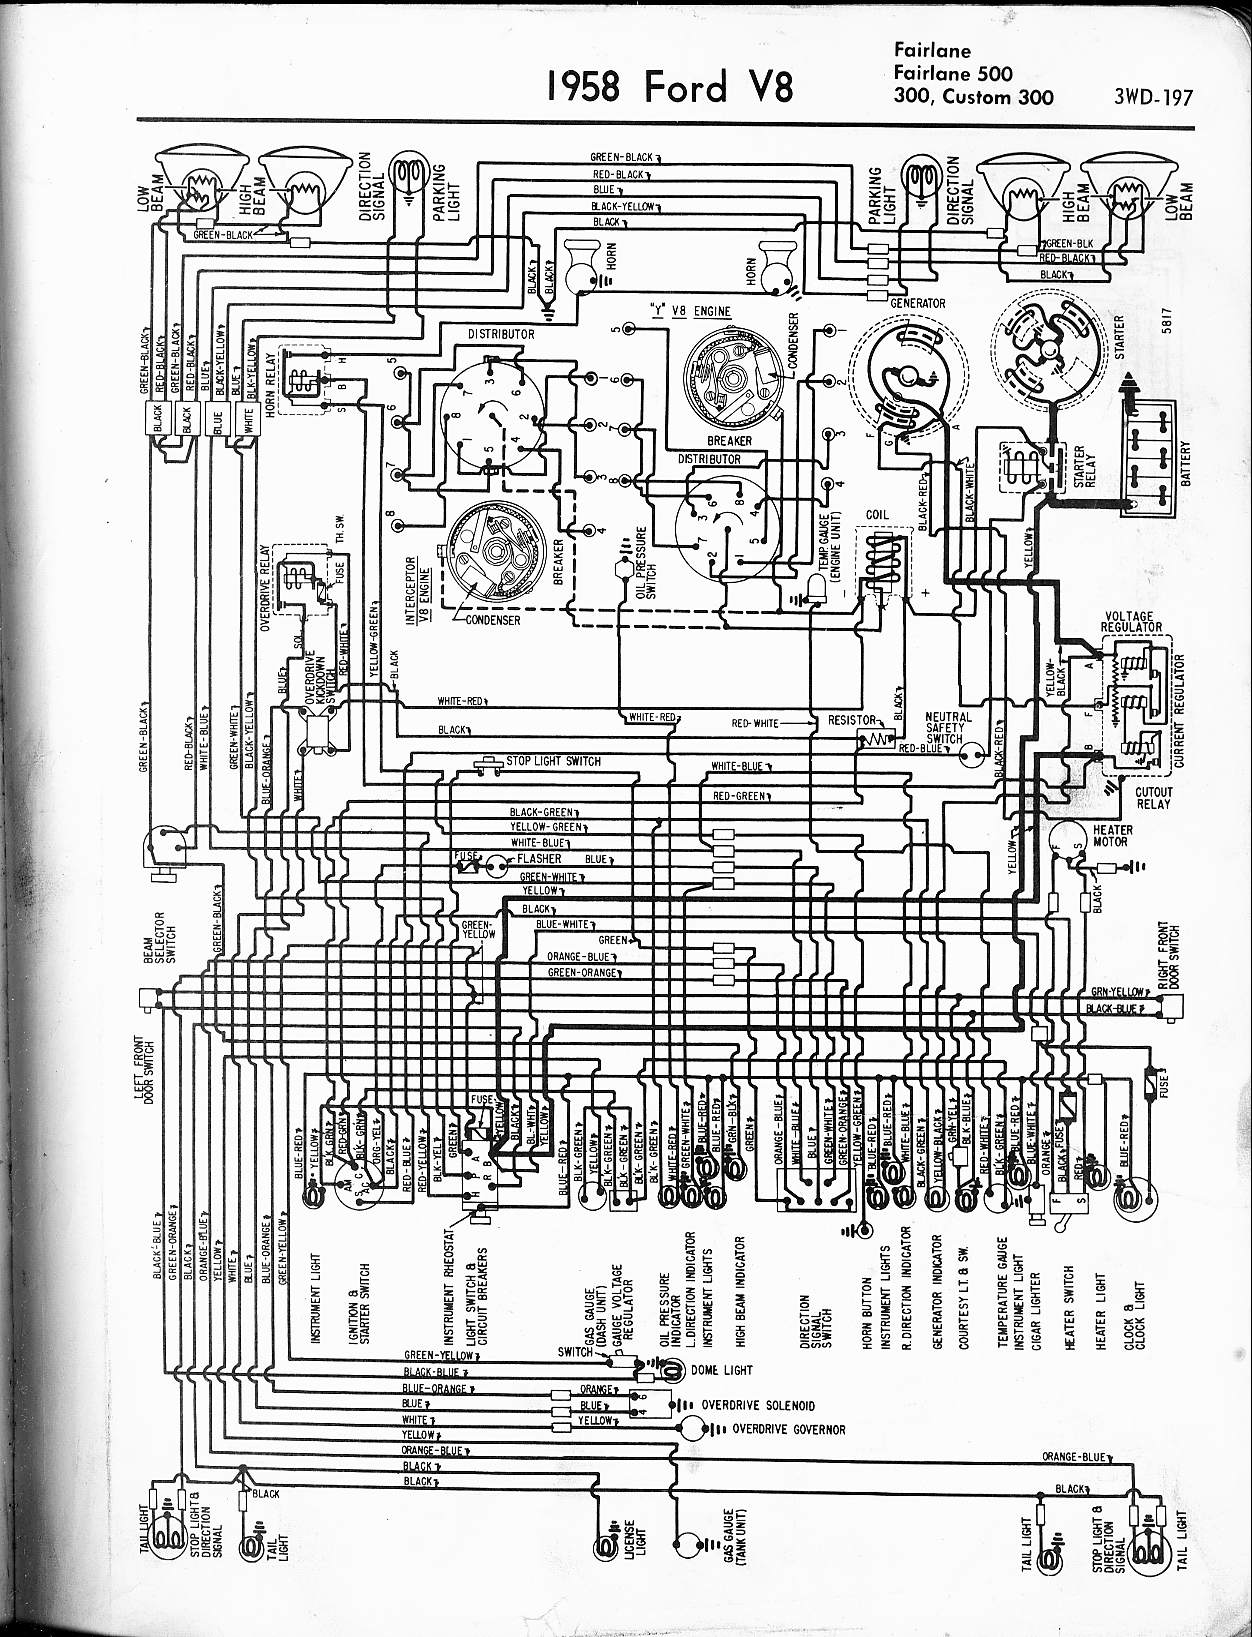 1966 ranchero wiring diagram online schematic diagram u2022 rh holyoak co  1986 ford thunderbird radio wiring diagram